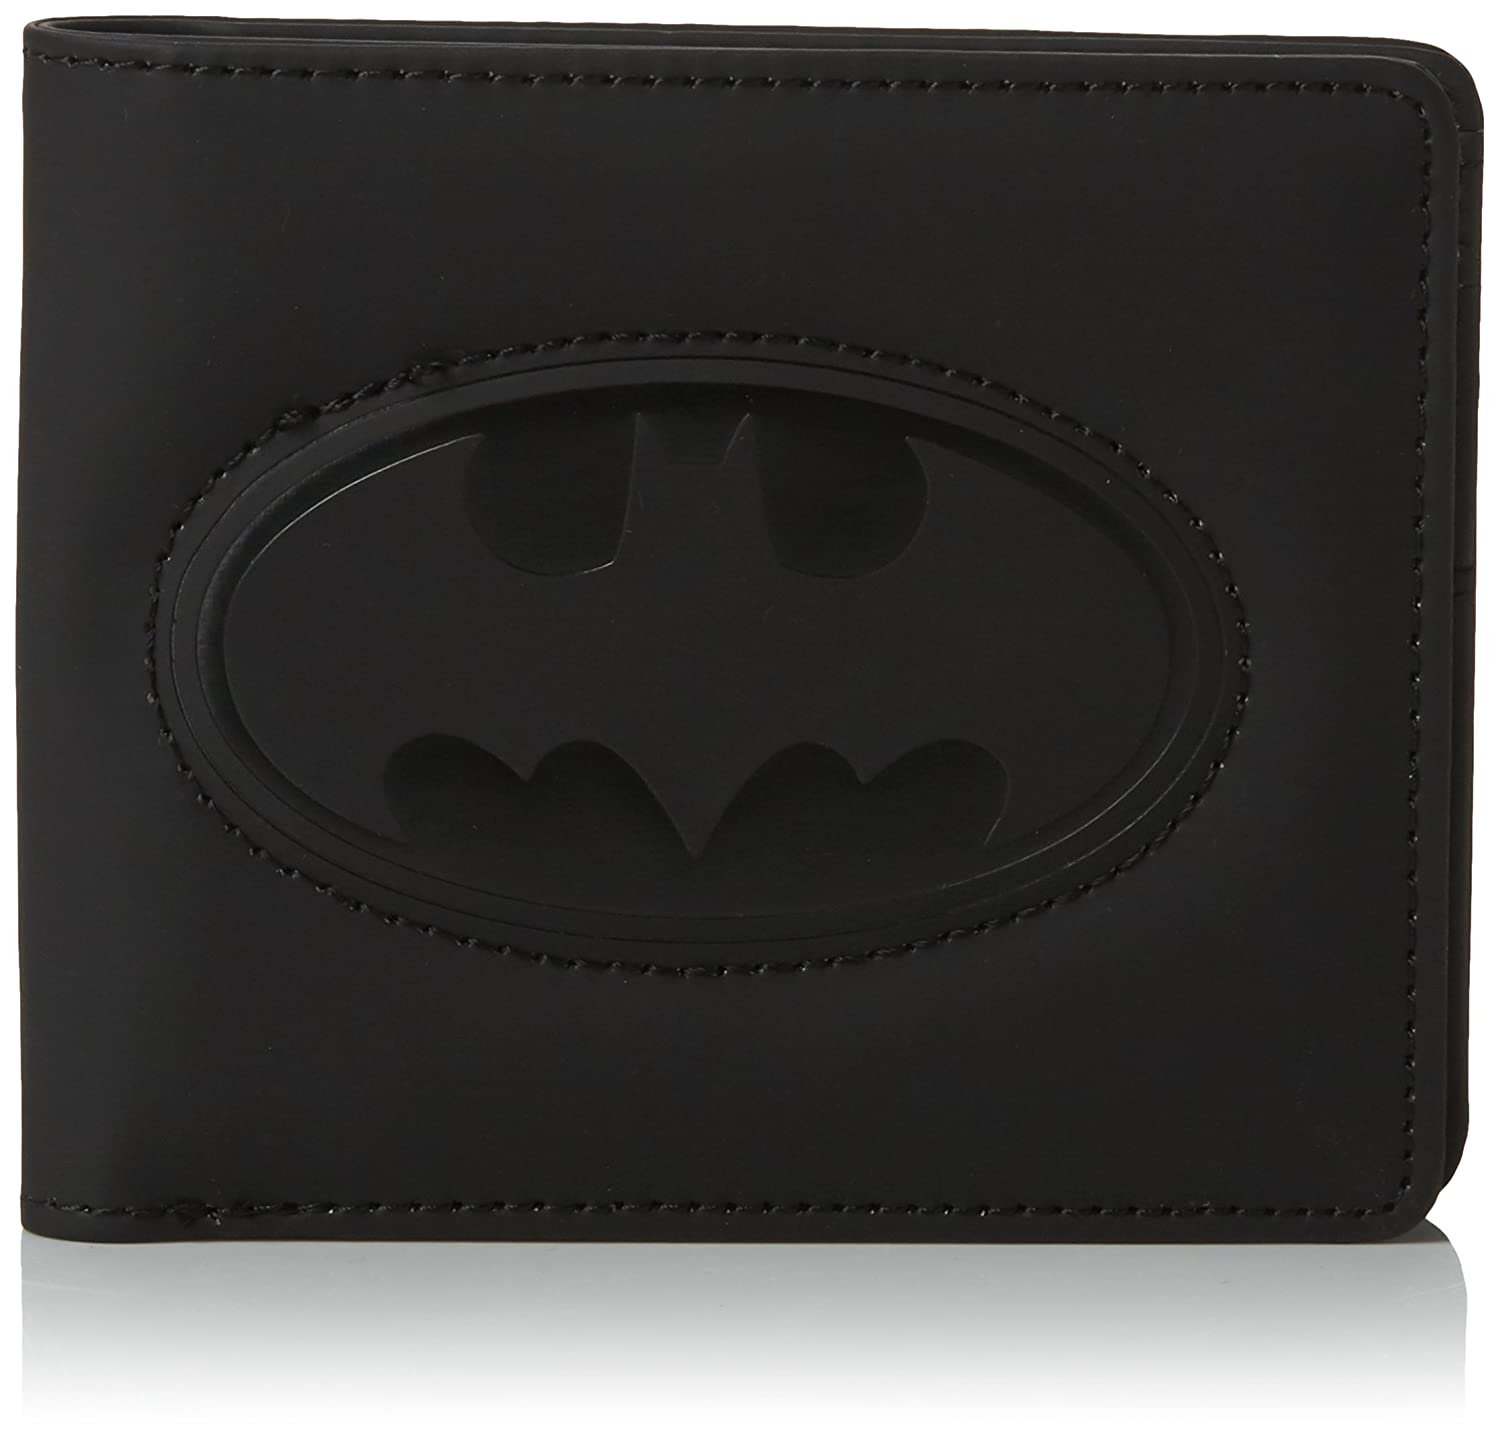 Batman Black Embossed Logo Wallet by DC Comics TruffleShuffle DCBBWEBM-WBUIN